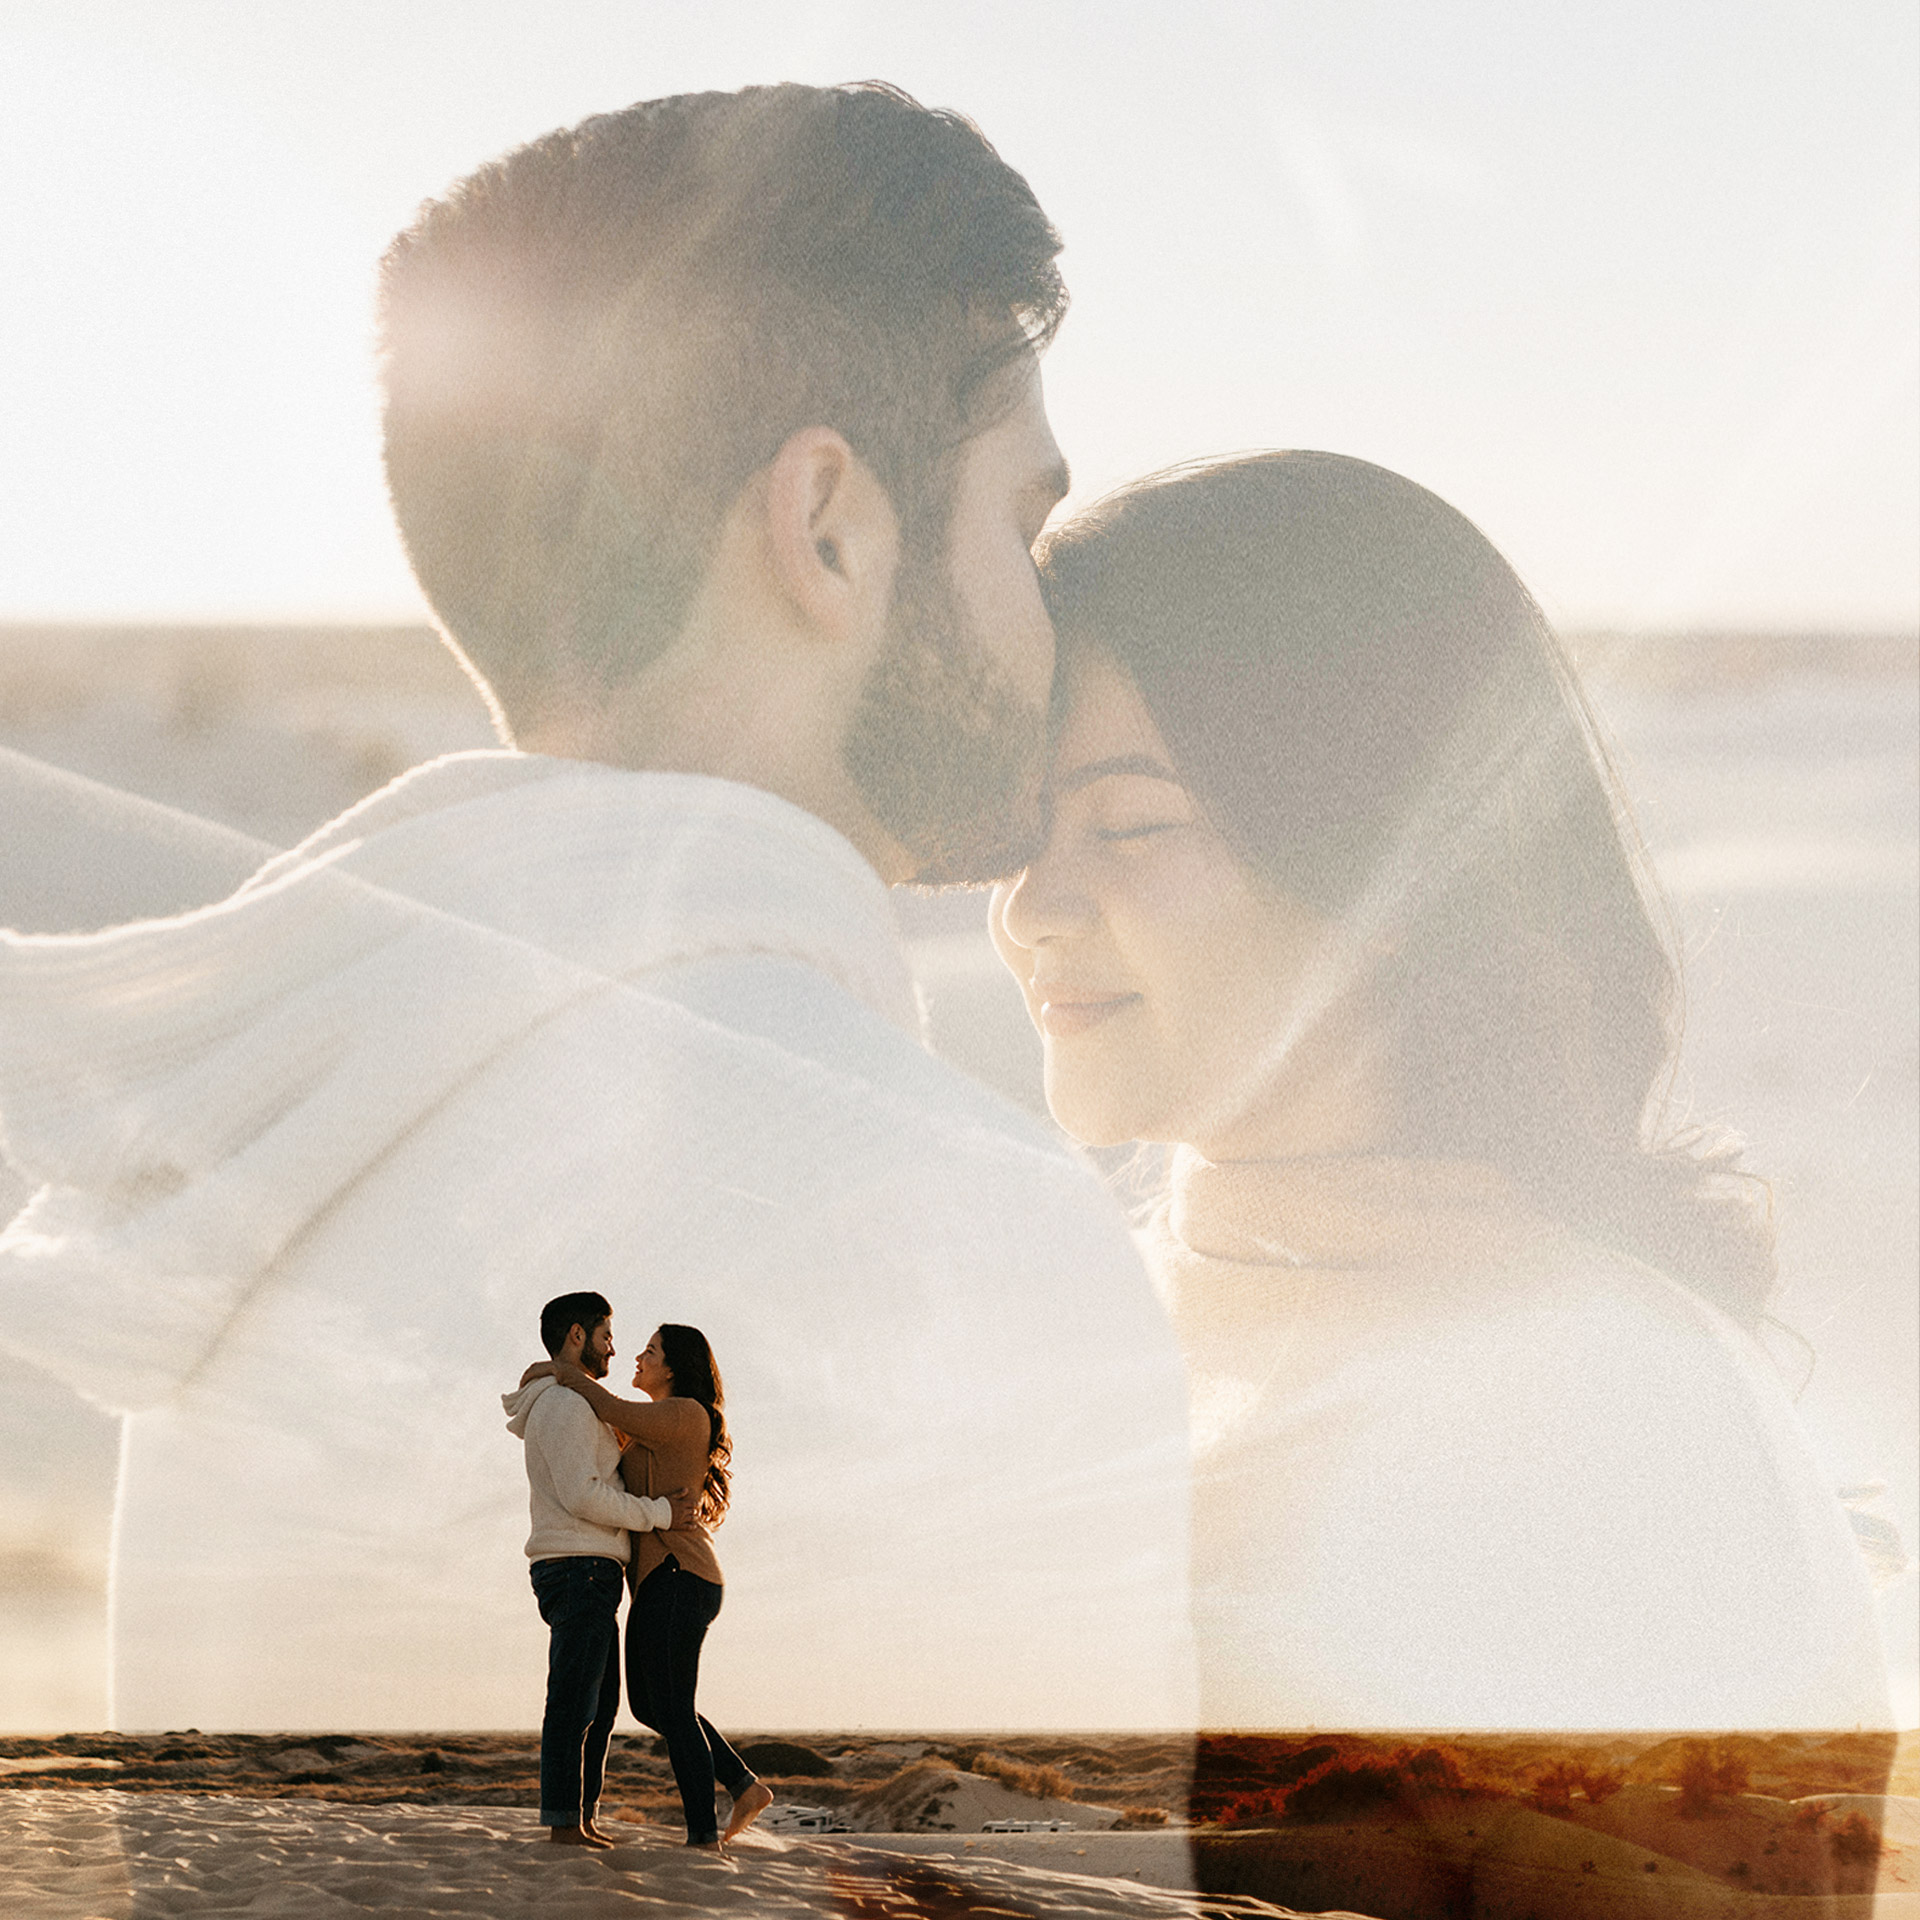 Engagement photos double exposure with landscape picture and couple being romantic